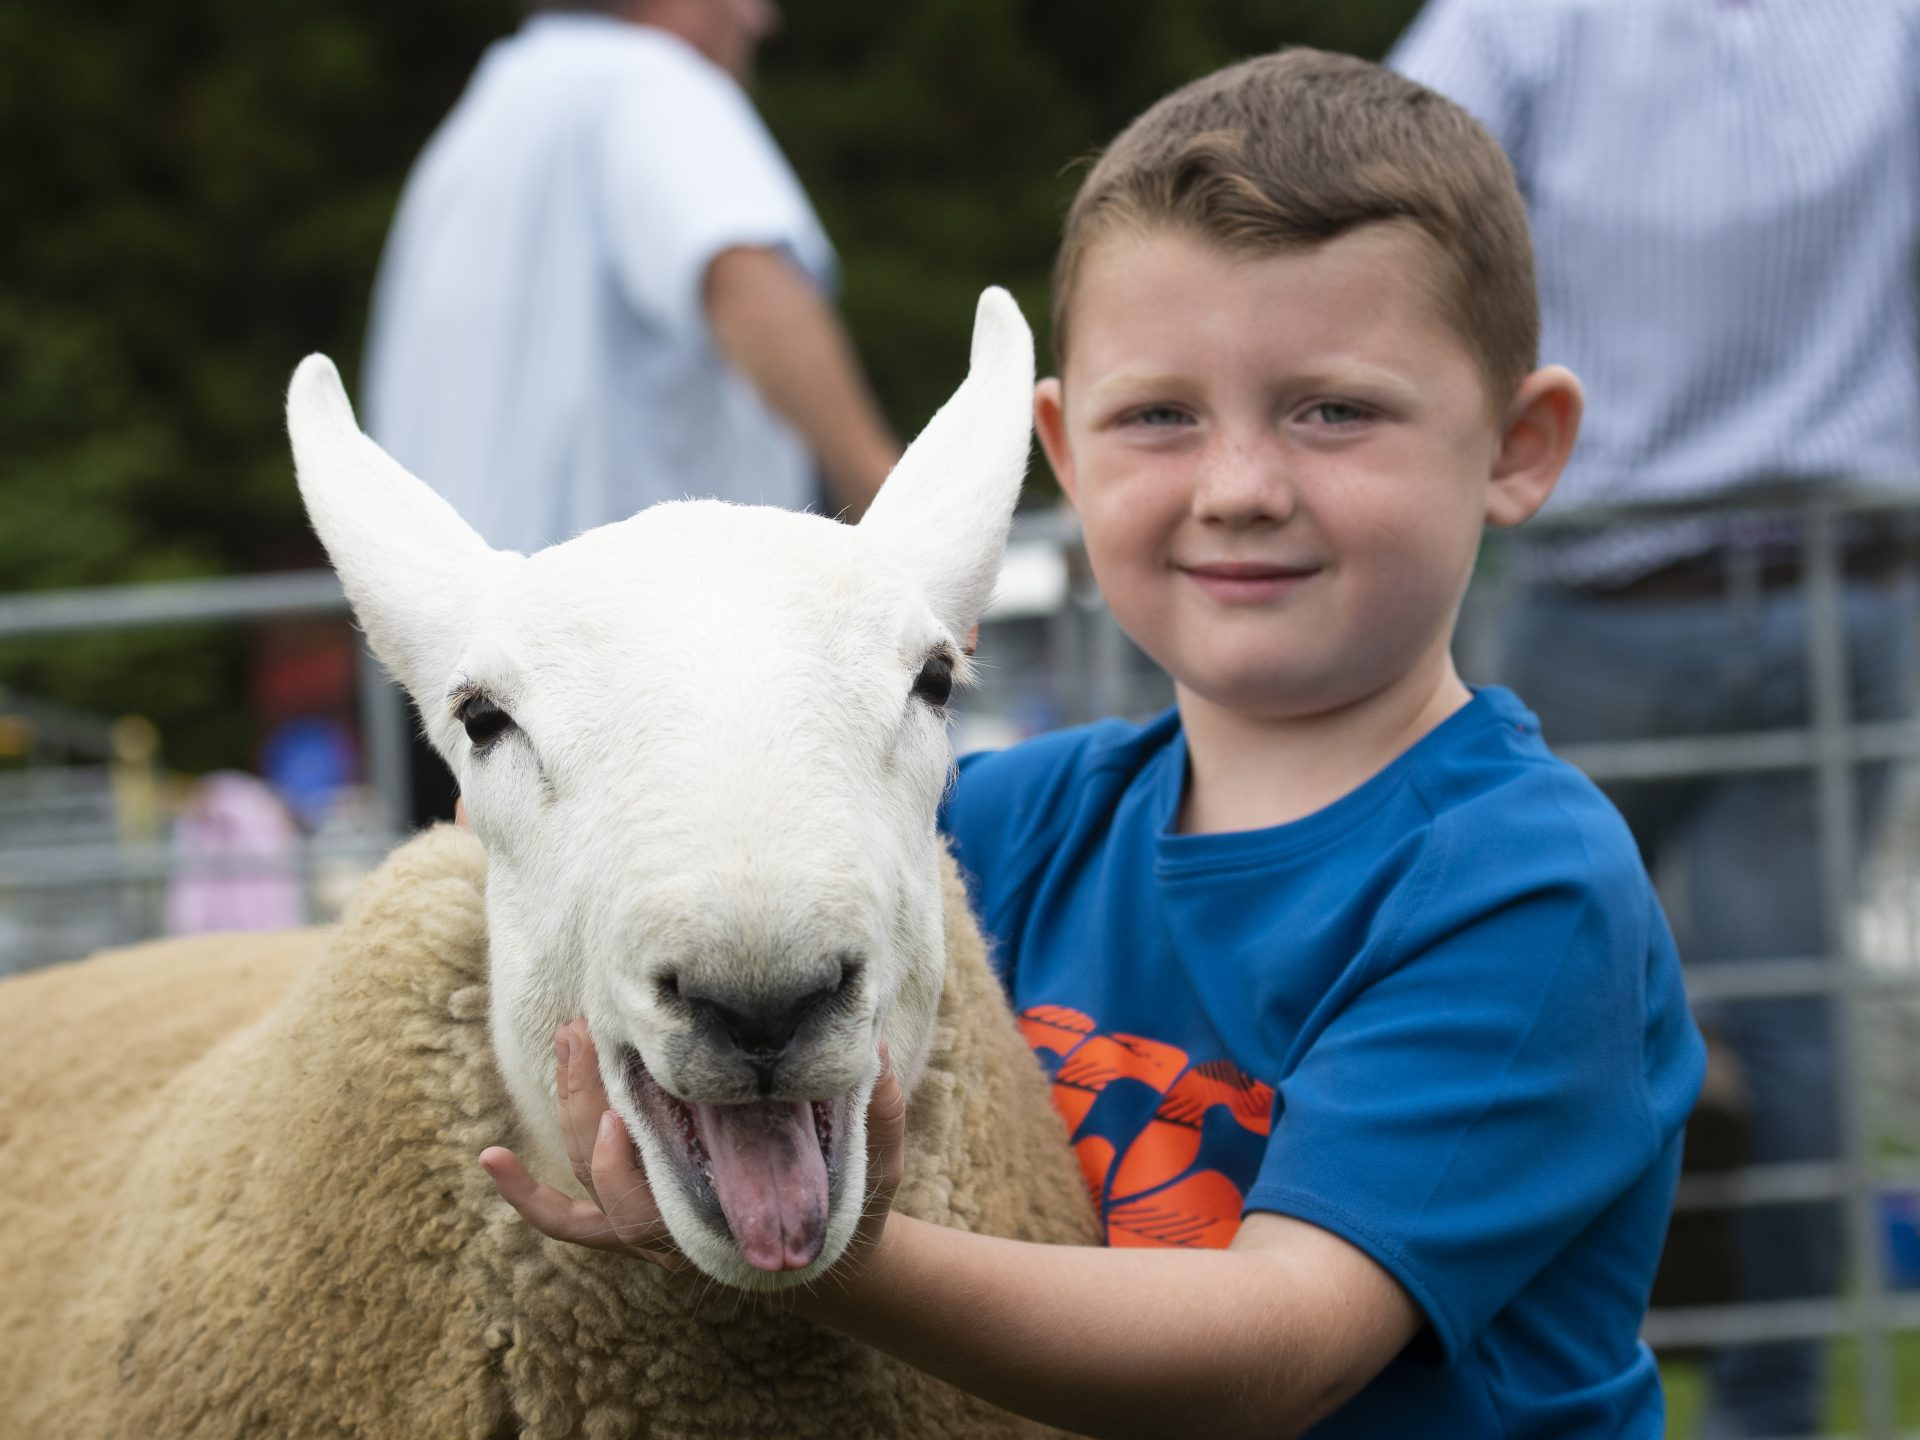 Child with a sheep at the Border Union Show event in Kelso